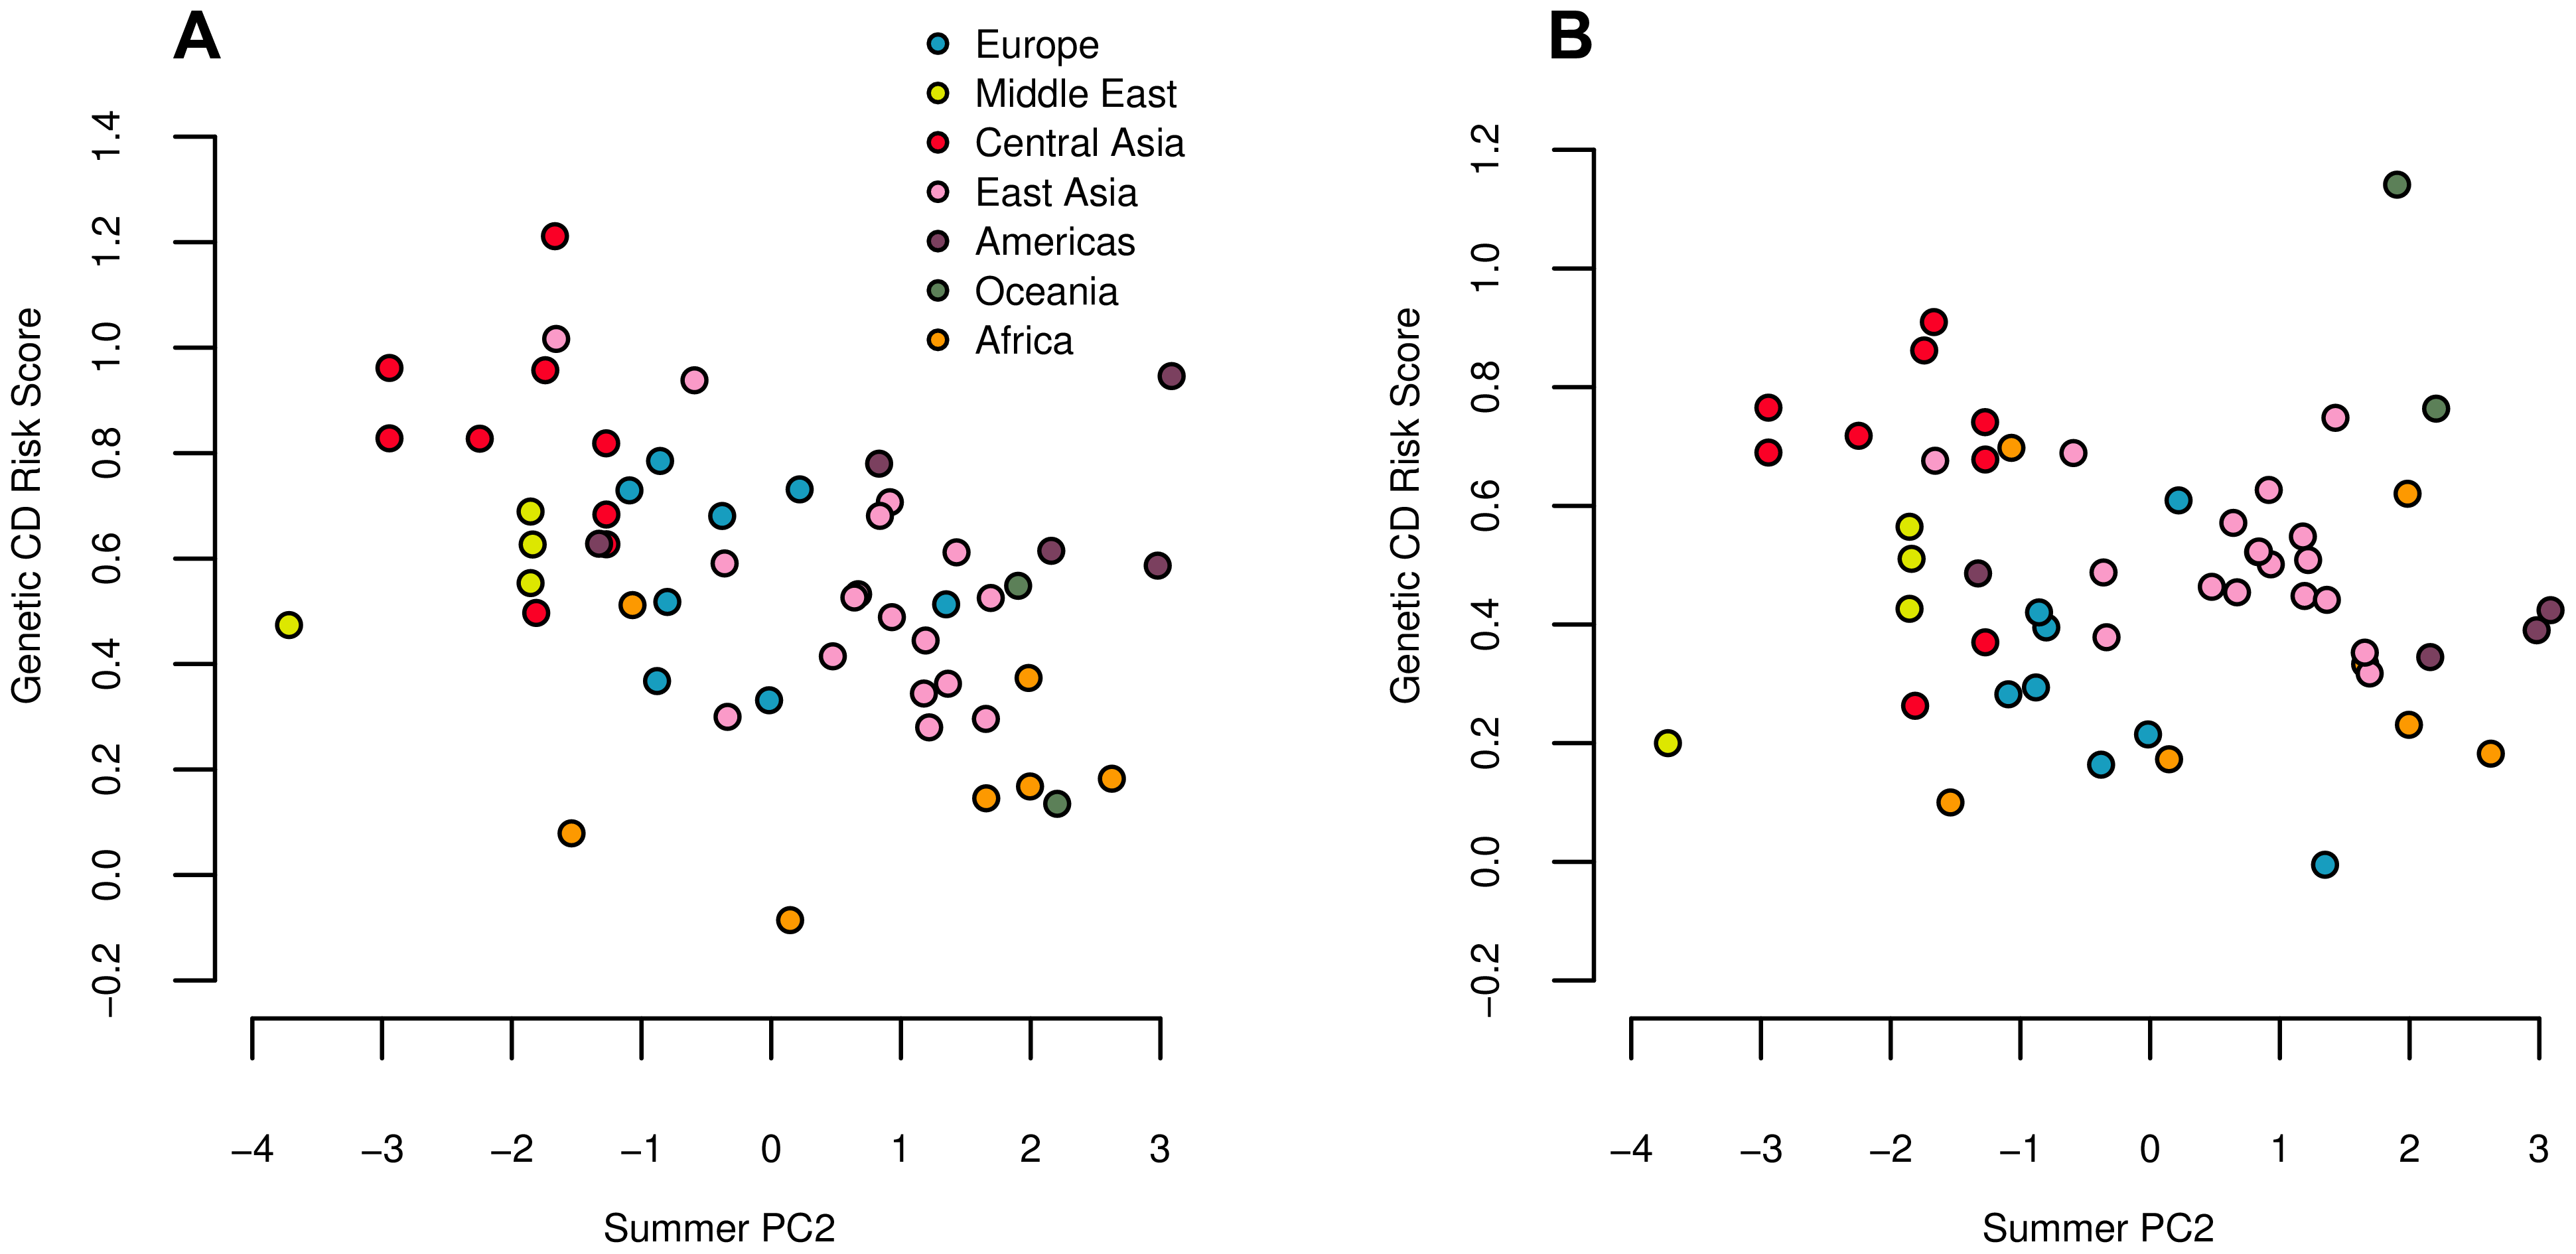 Estimated genetic risk score for Crohn's disease (A) and ulcerative colitis (B) risk plotted against summer PC2.